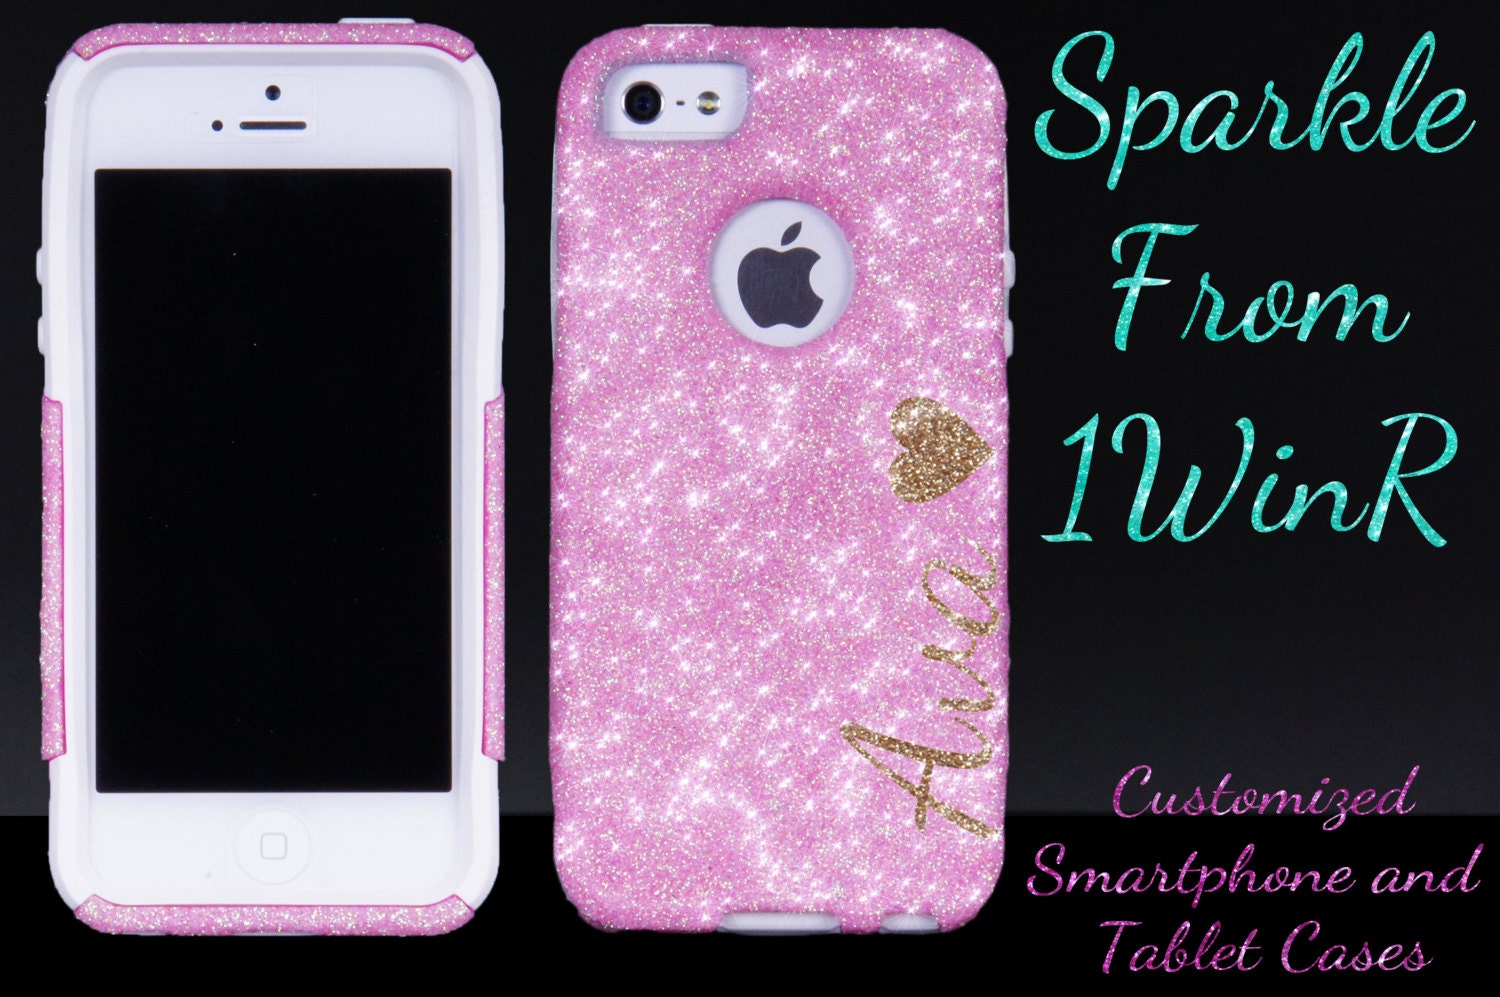 Ot otterbox iphone 6s plus covers - Iphone 7 7 Plus Personalized Otterbox Iphone 6 6 Plus Case Iphone 5s Otterbox For Iphone 5 Iphone 5s Light Pink Personalized Sparkly Case